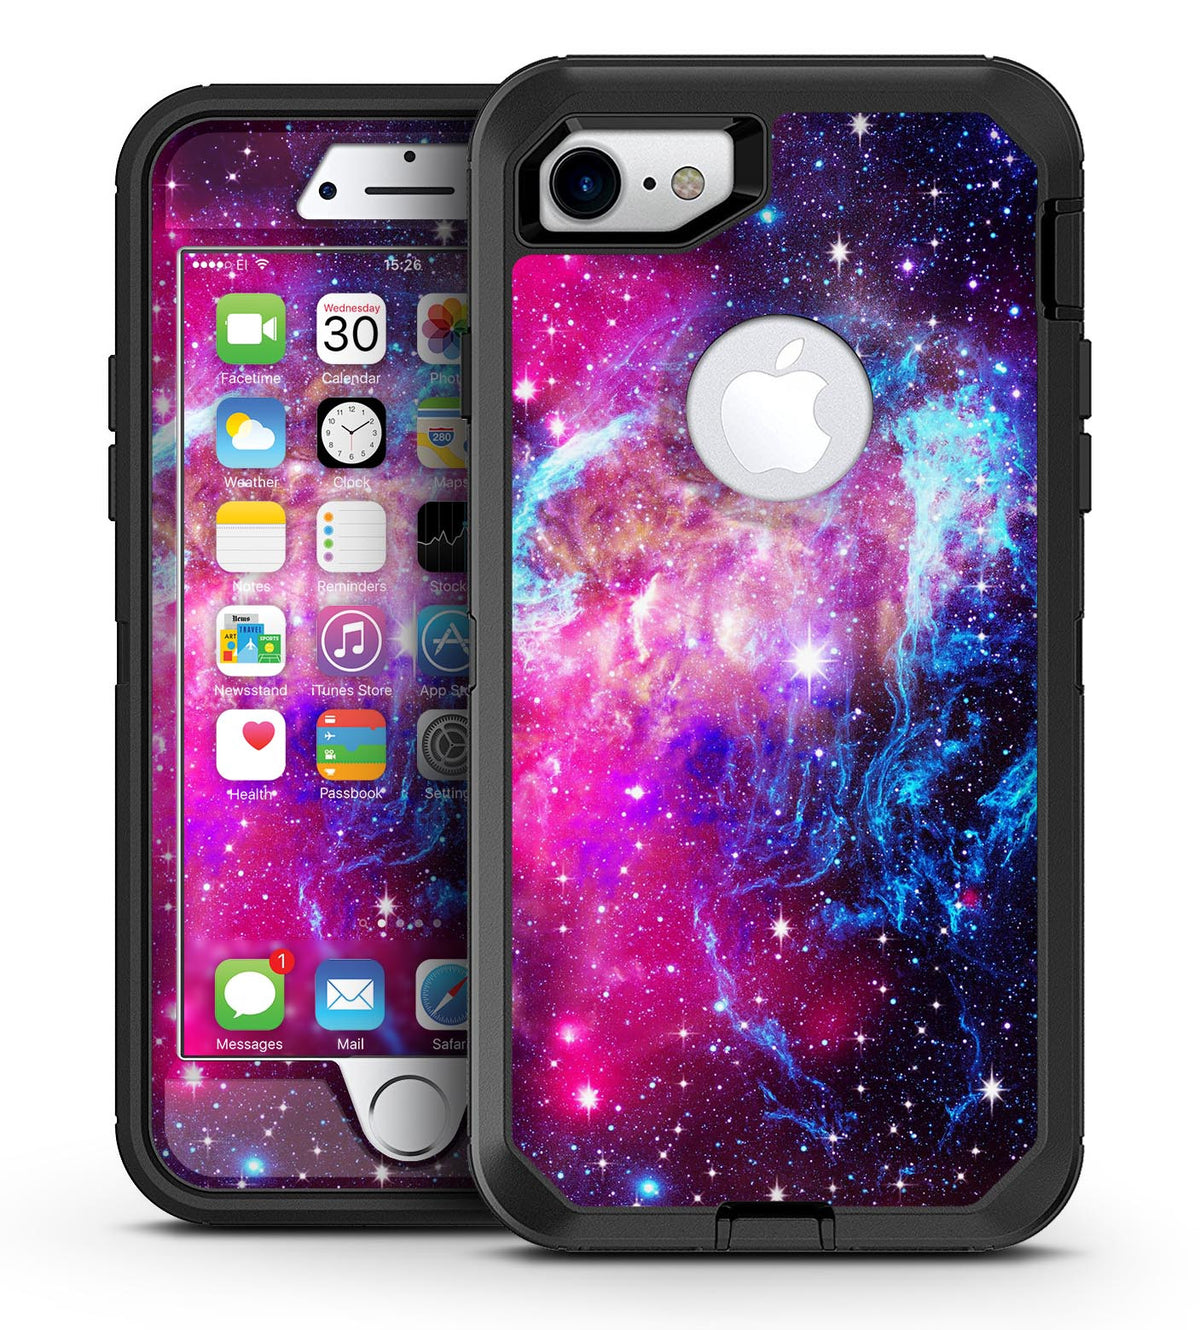 quality design 21f12 ffbcb Bright Trippy Space - iPhone 7 or 7 Plus OtterBox Defender Case Skin Decal  Kit